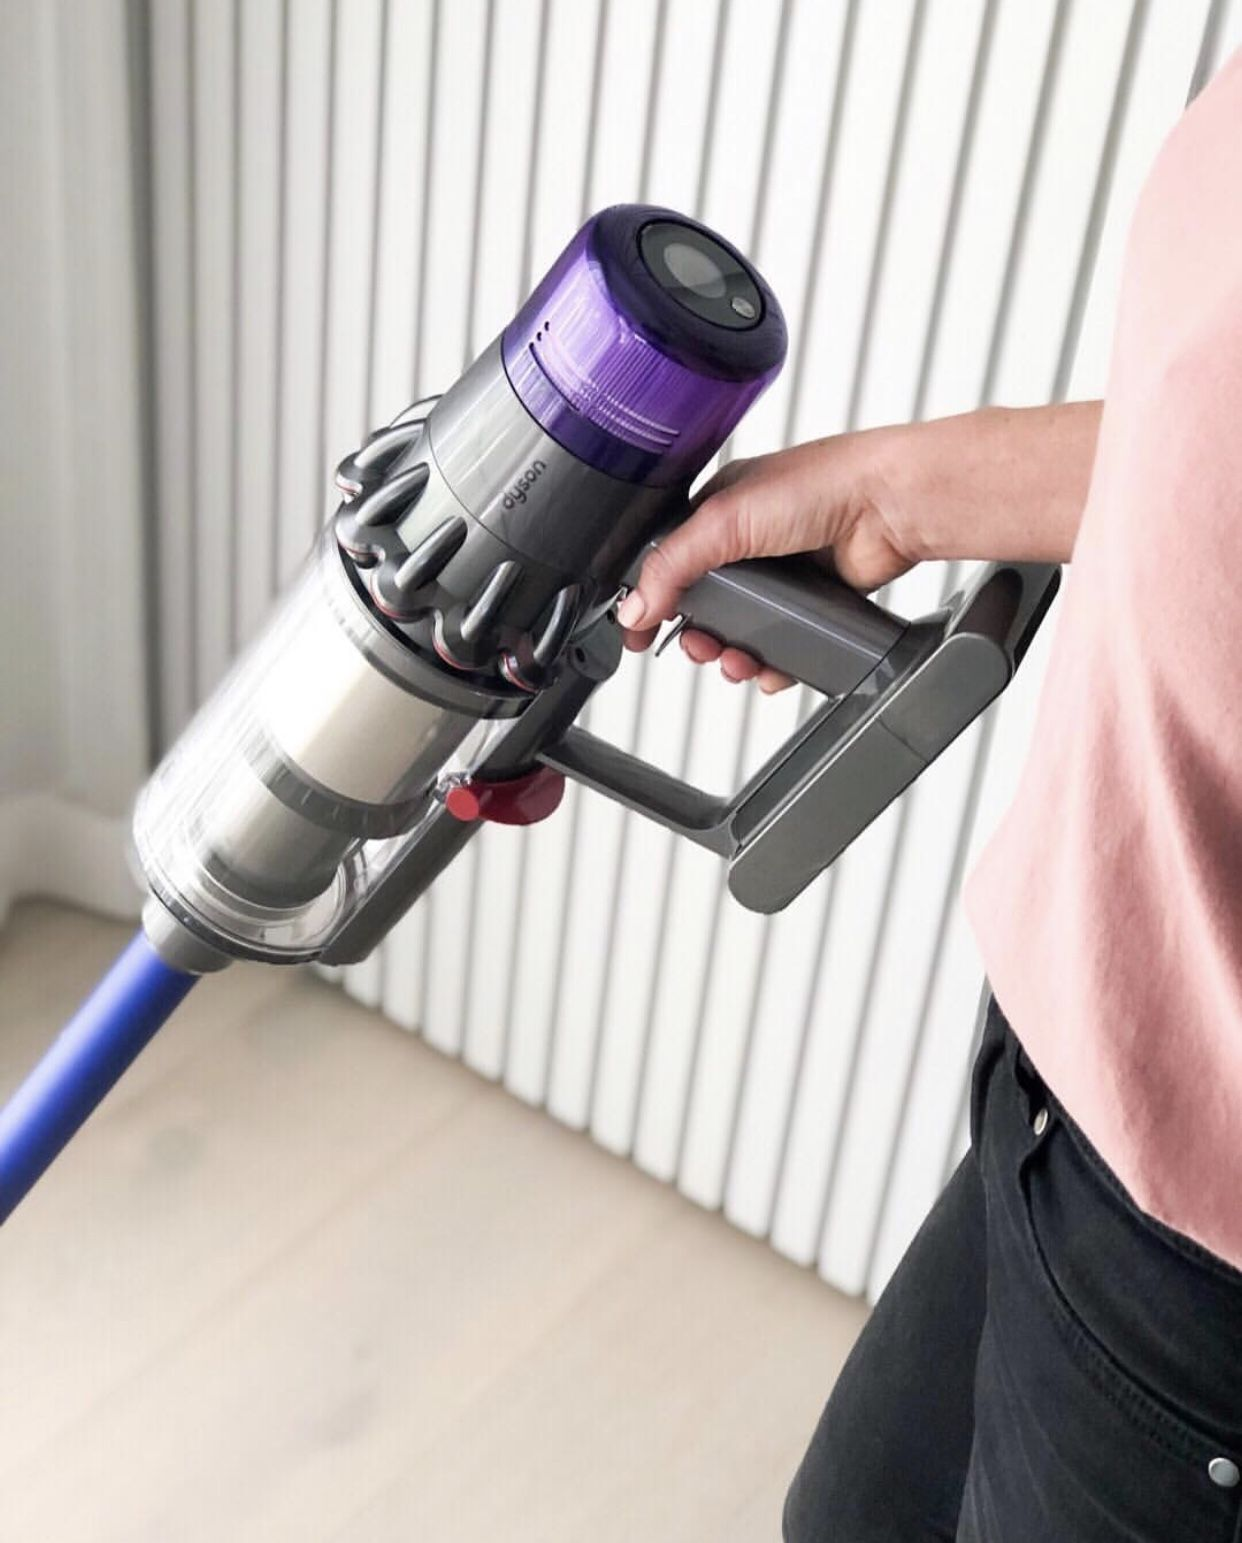 How To Dump Trash Out Of A Dyson V6 Cordless Vacuum?